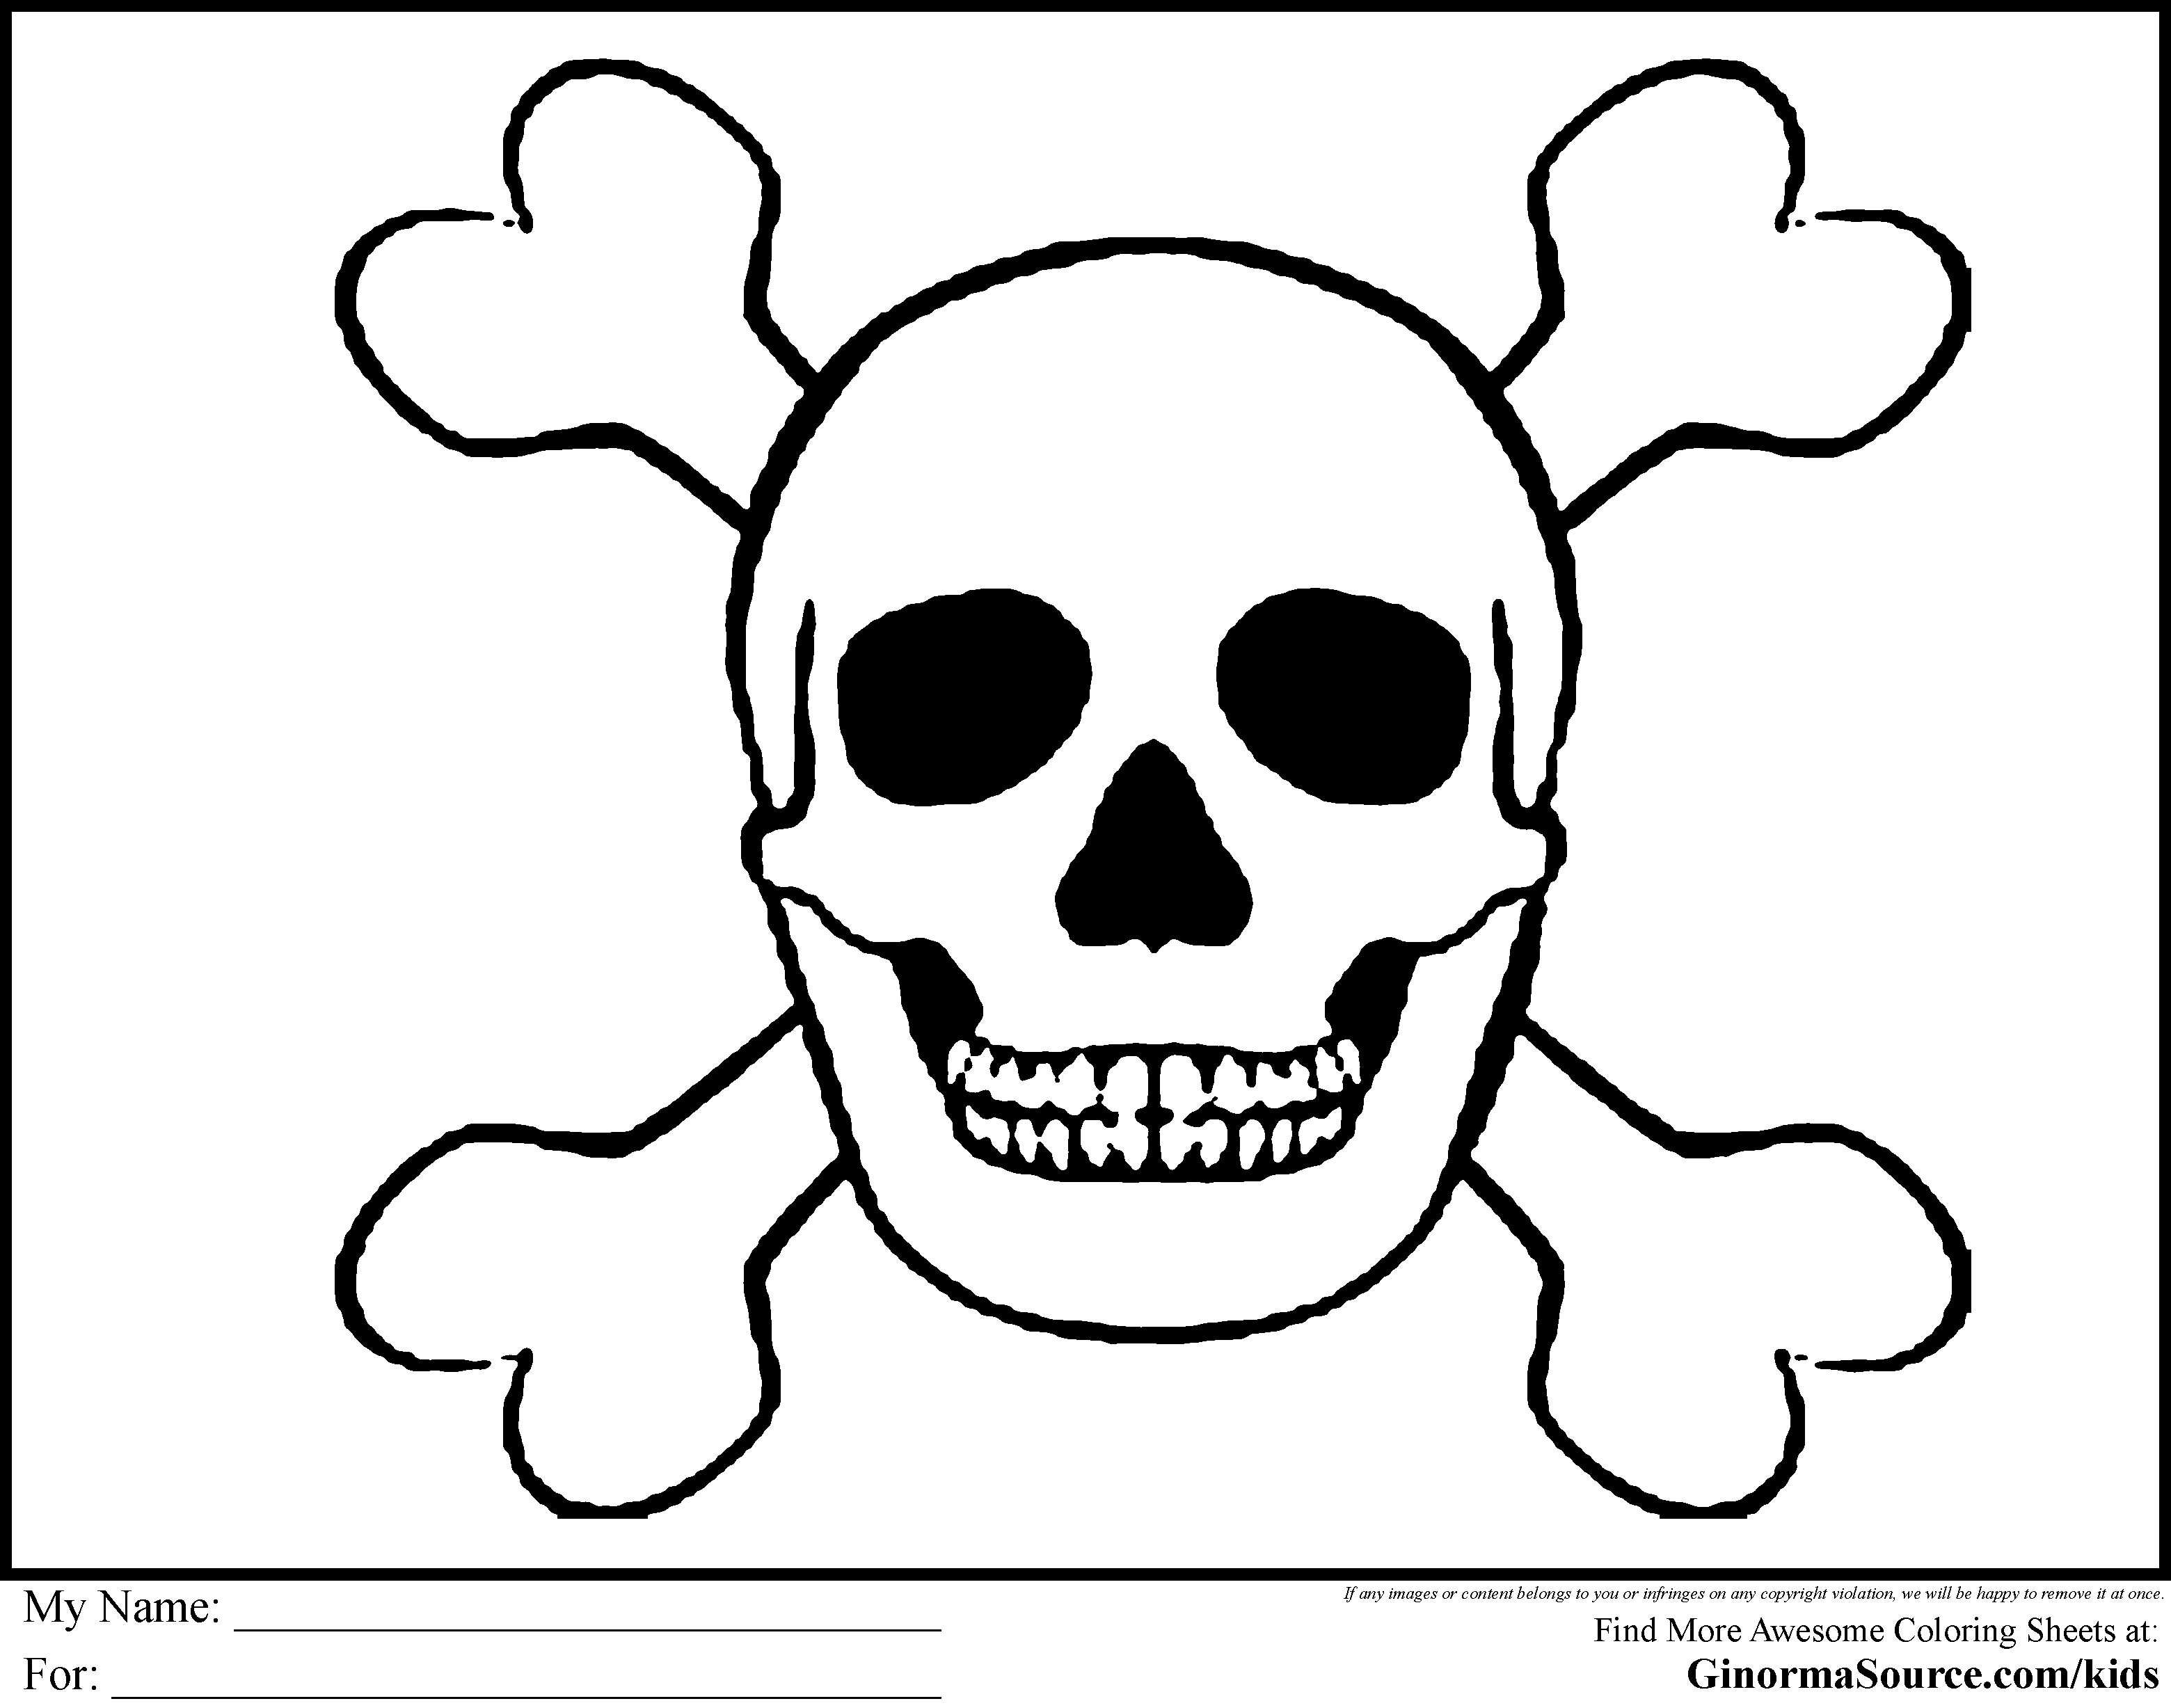 pirate images to color pirates of the caribbean coloring pages kidsuki pirate to color images